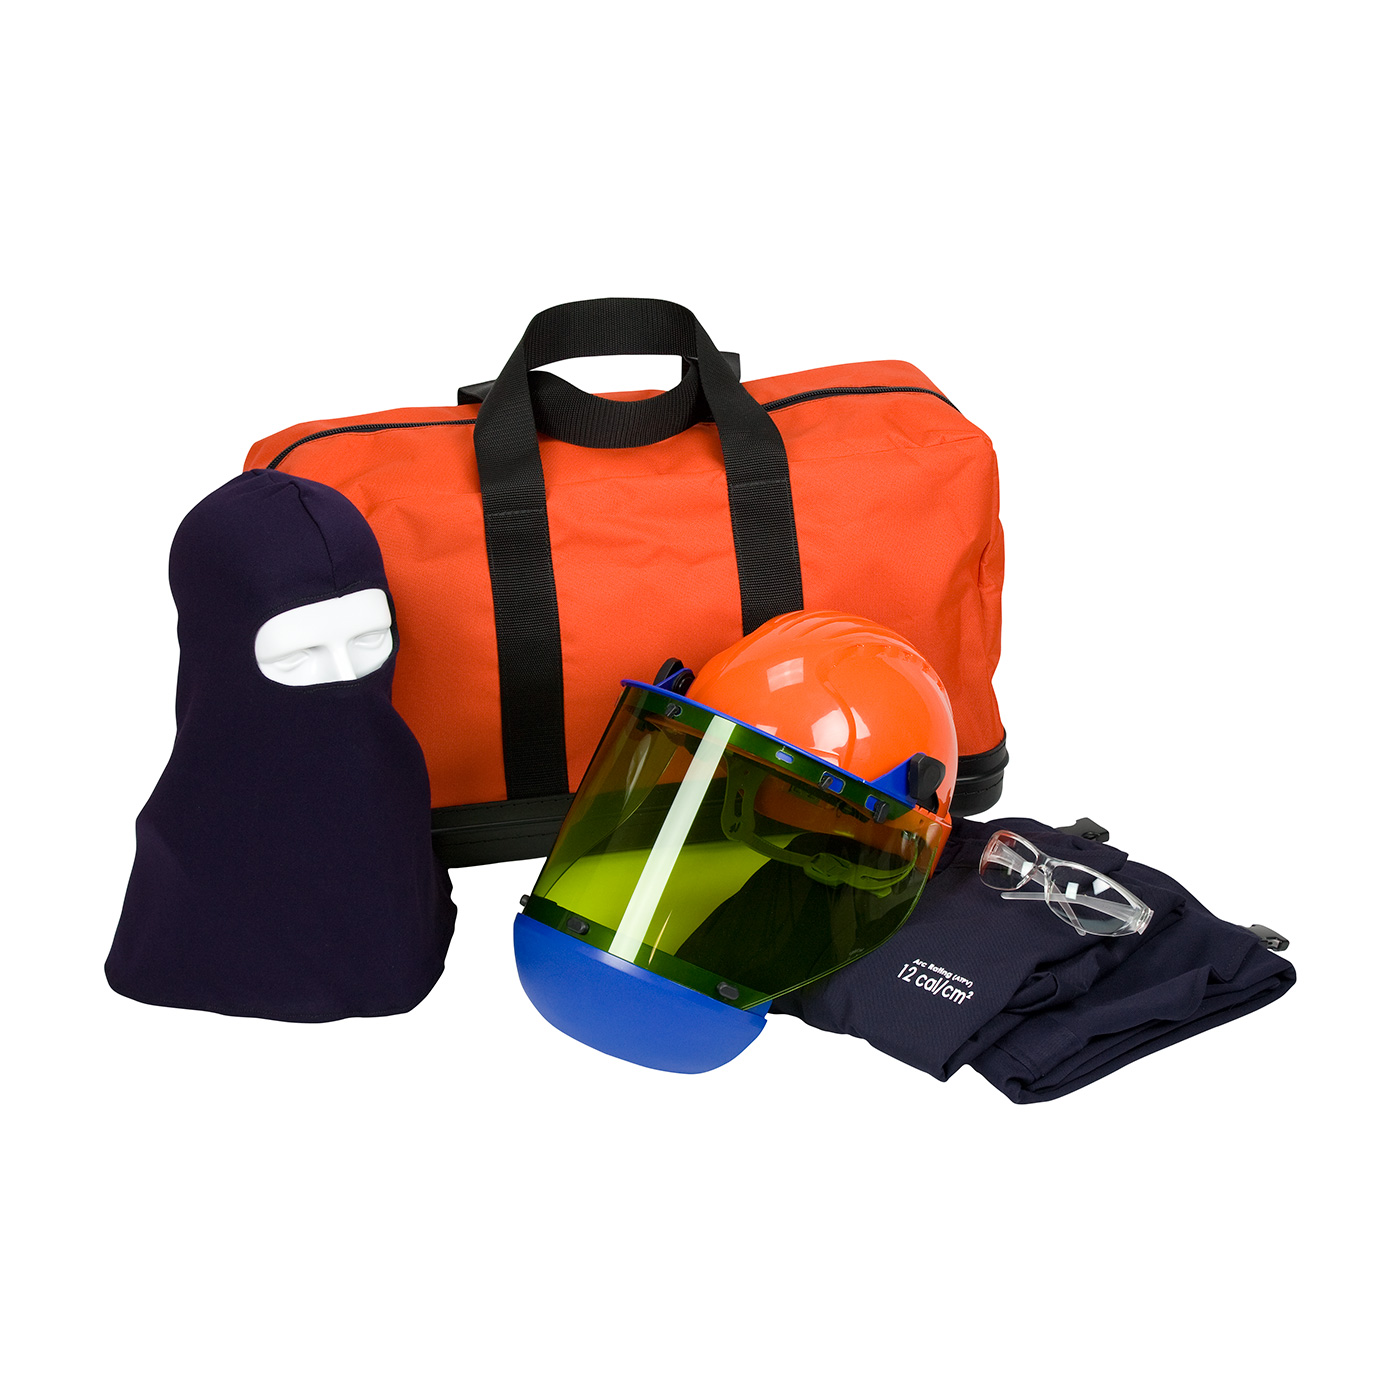 9150-52804 PIP® PPE 2 Arc Flash Kit - 12 Cal/cm2 Contains jacket, overall, hard hat with arc shield, balaclava, safety glasses and carry bag